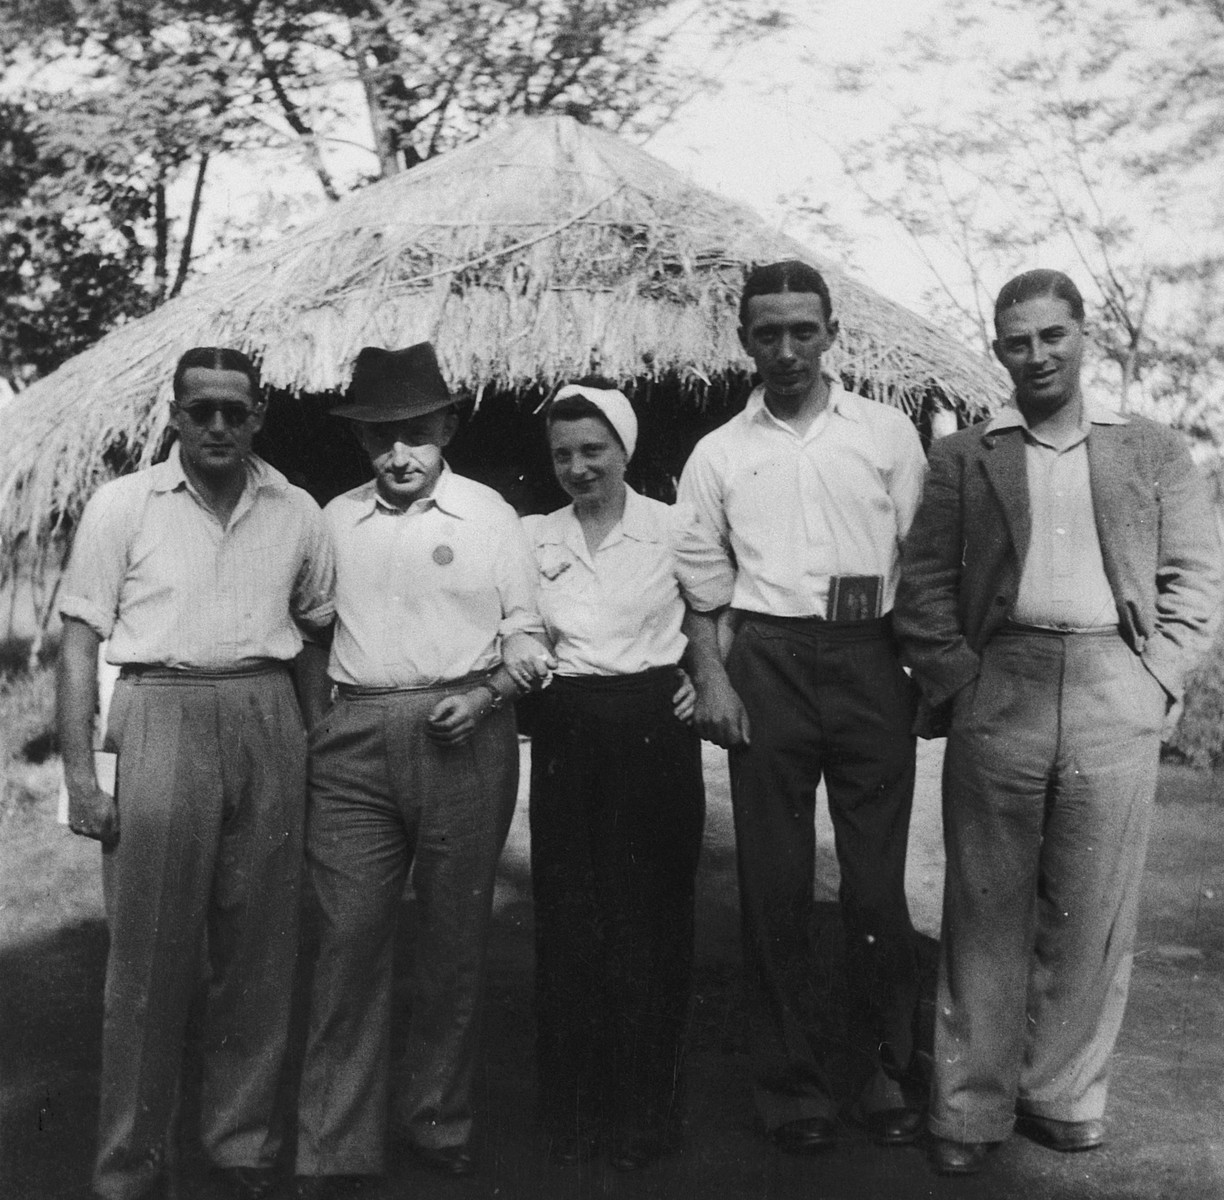 Group portrait of German-Jewish refugees in front of a thatched roof hut in Kenya.  Pictured from left to right are: Mr. Levar, Mr. Kuslinsku, Ruth Weyl, Heinrich Weyl and Mr. Kuhn.